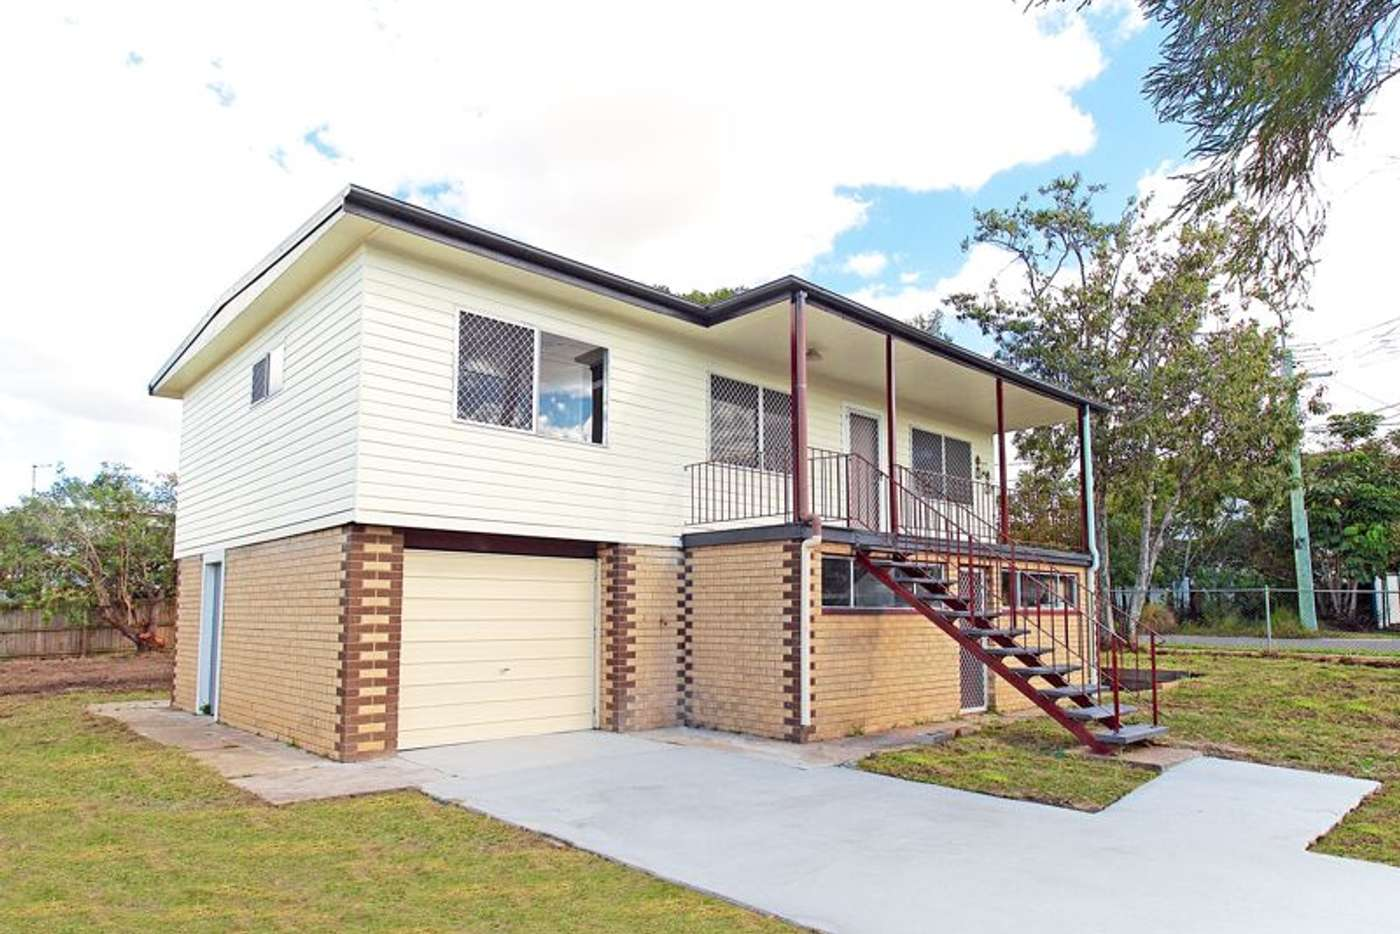 Main view of Homely house listing, 1 Rhea Aveune, Logan Central QLD 4114